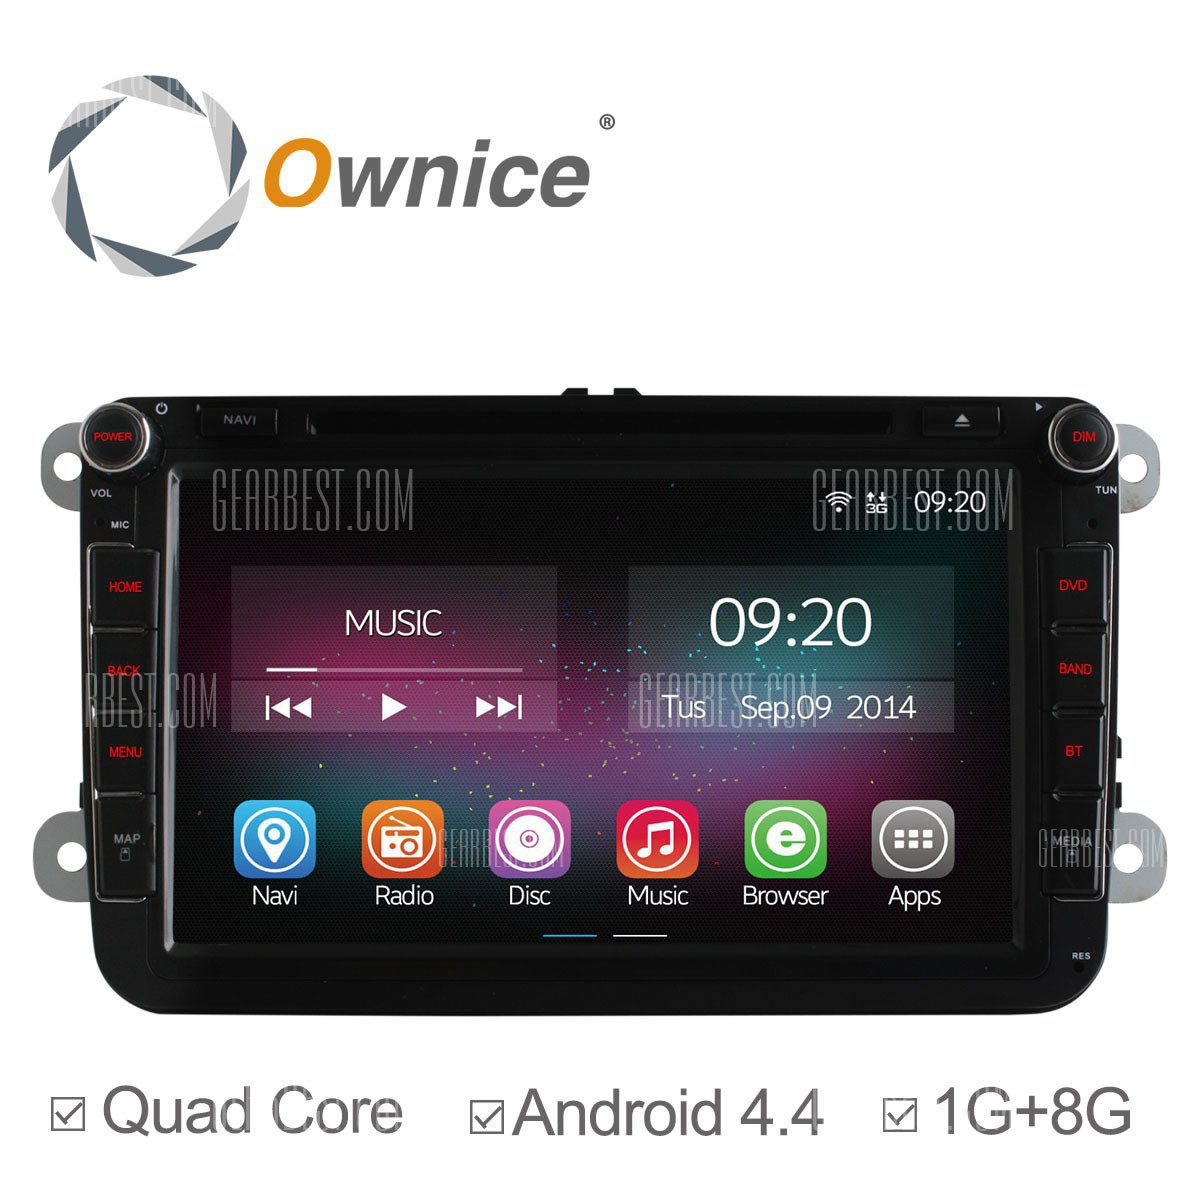 C200: Ownice OL - 8901un Android 4.4.2 8,0 pulgadas coche DVD GPS Reproductor multimedia